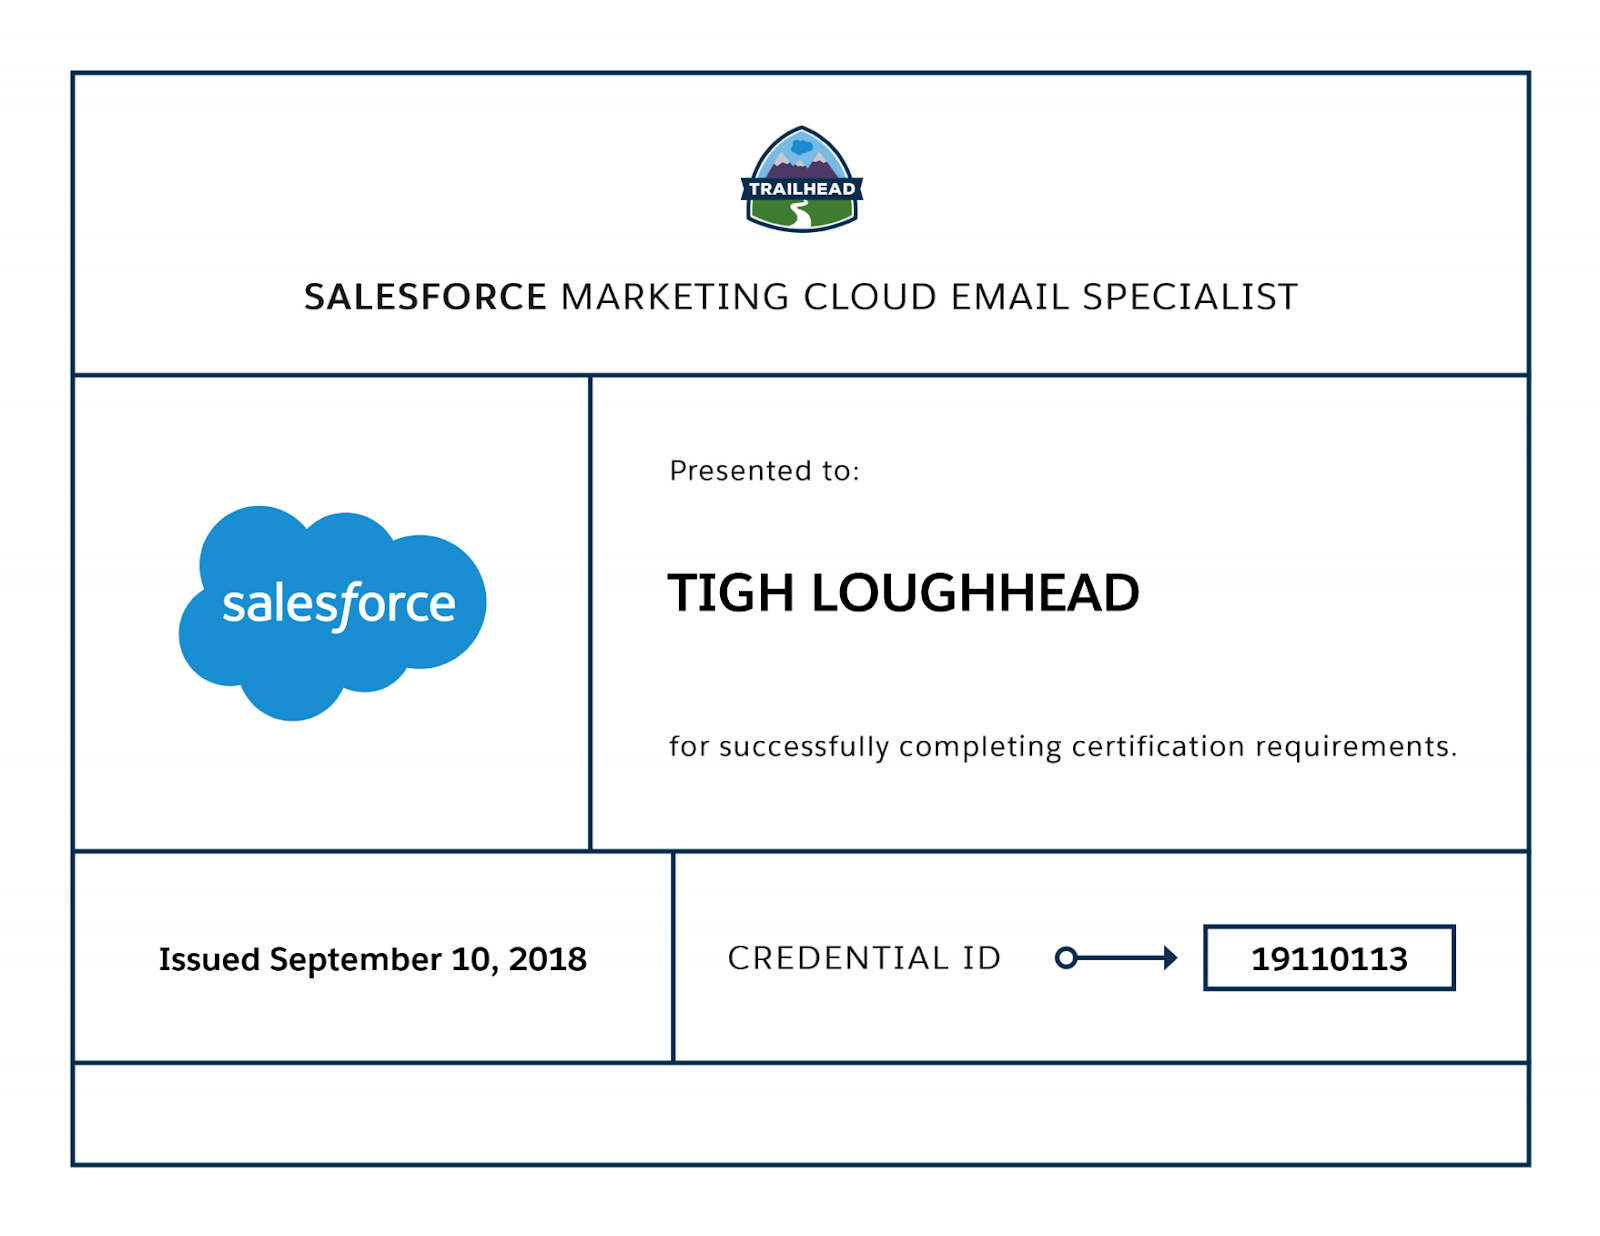 Tigh Loughhead is a Certified Salesforce Marketing Cloud Email Specialist